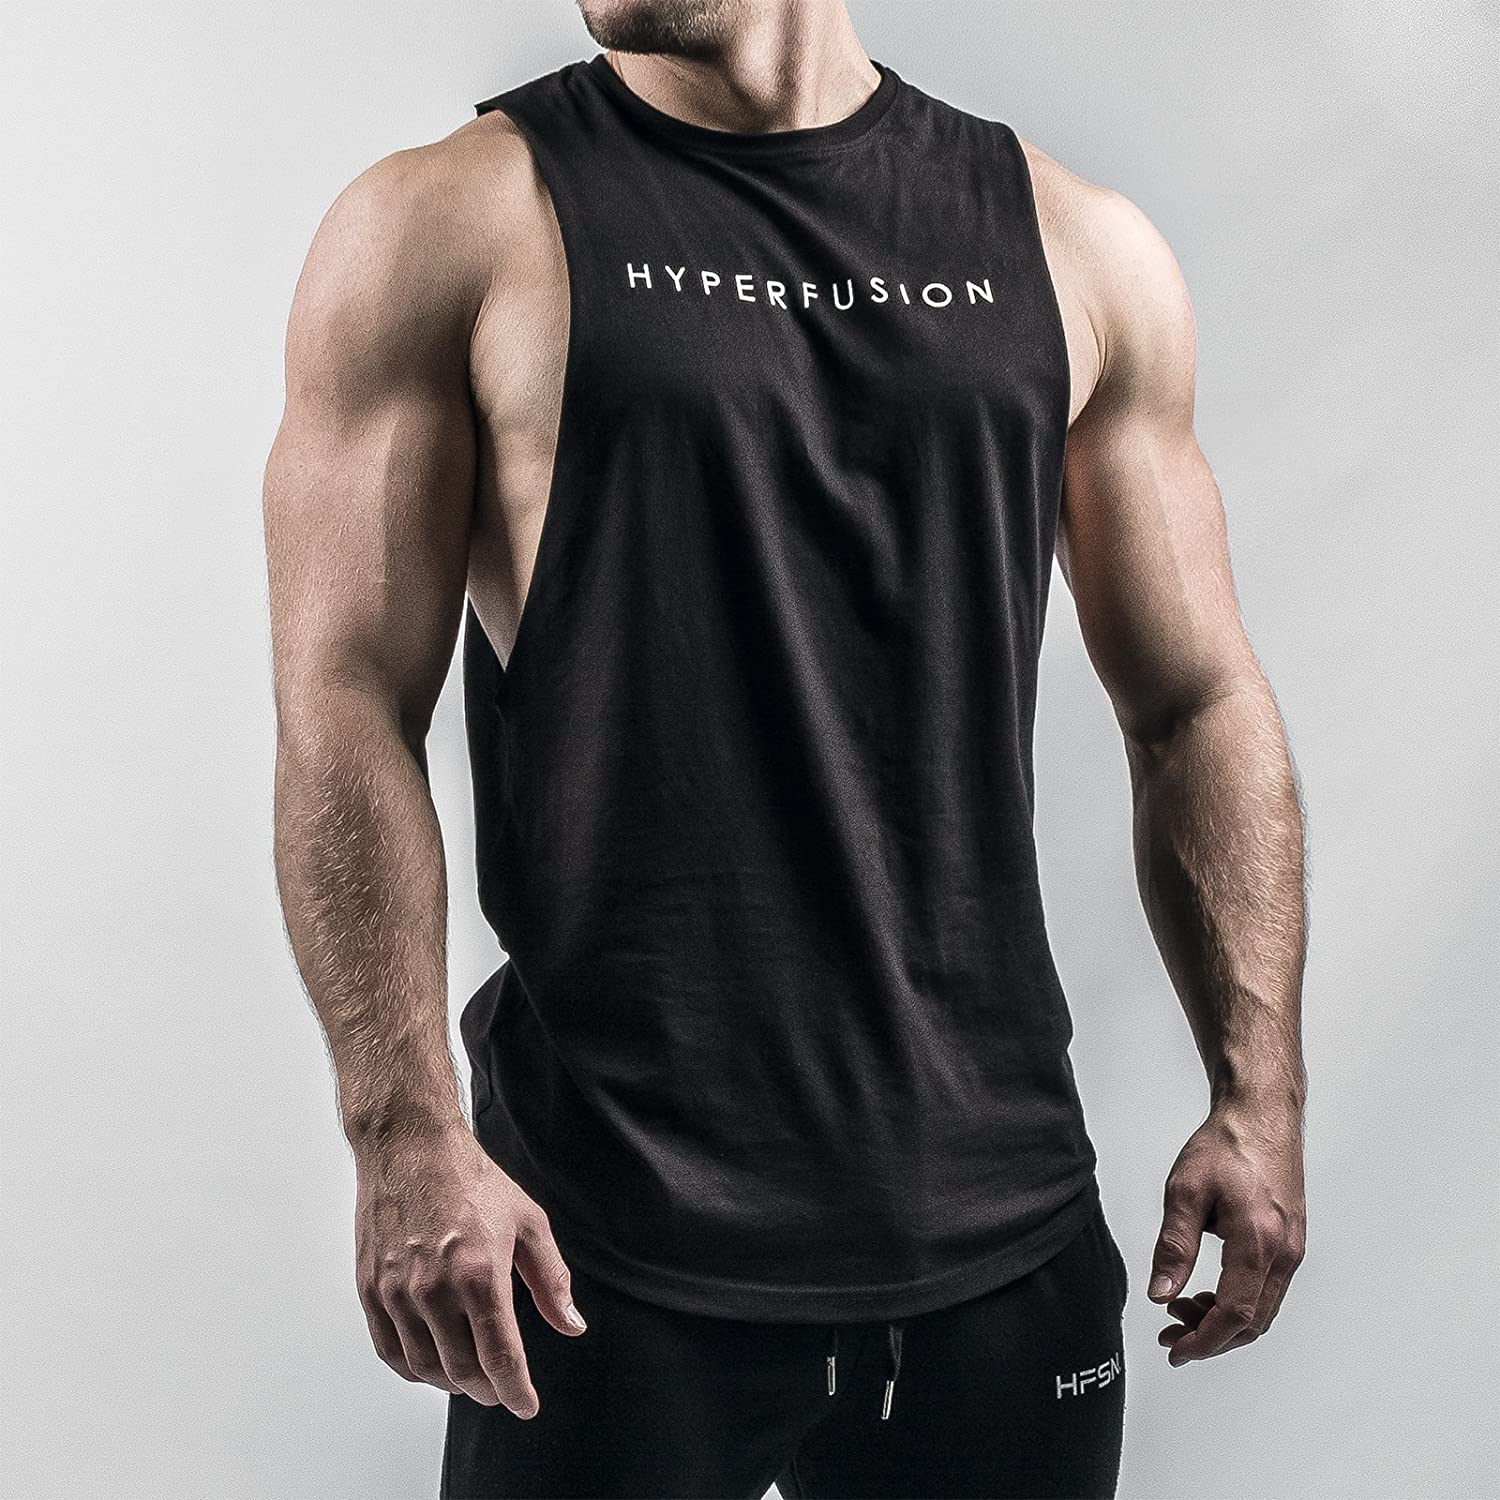 Hyperfusion Phantom Cut Off Tank Muscle Shirt Tank Top Gym Fitness